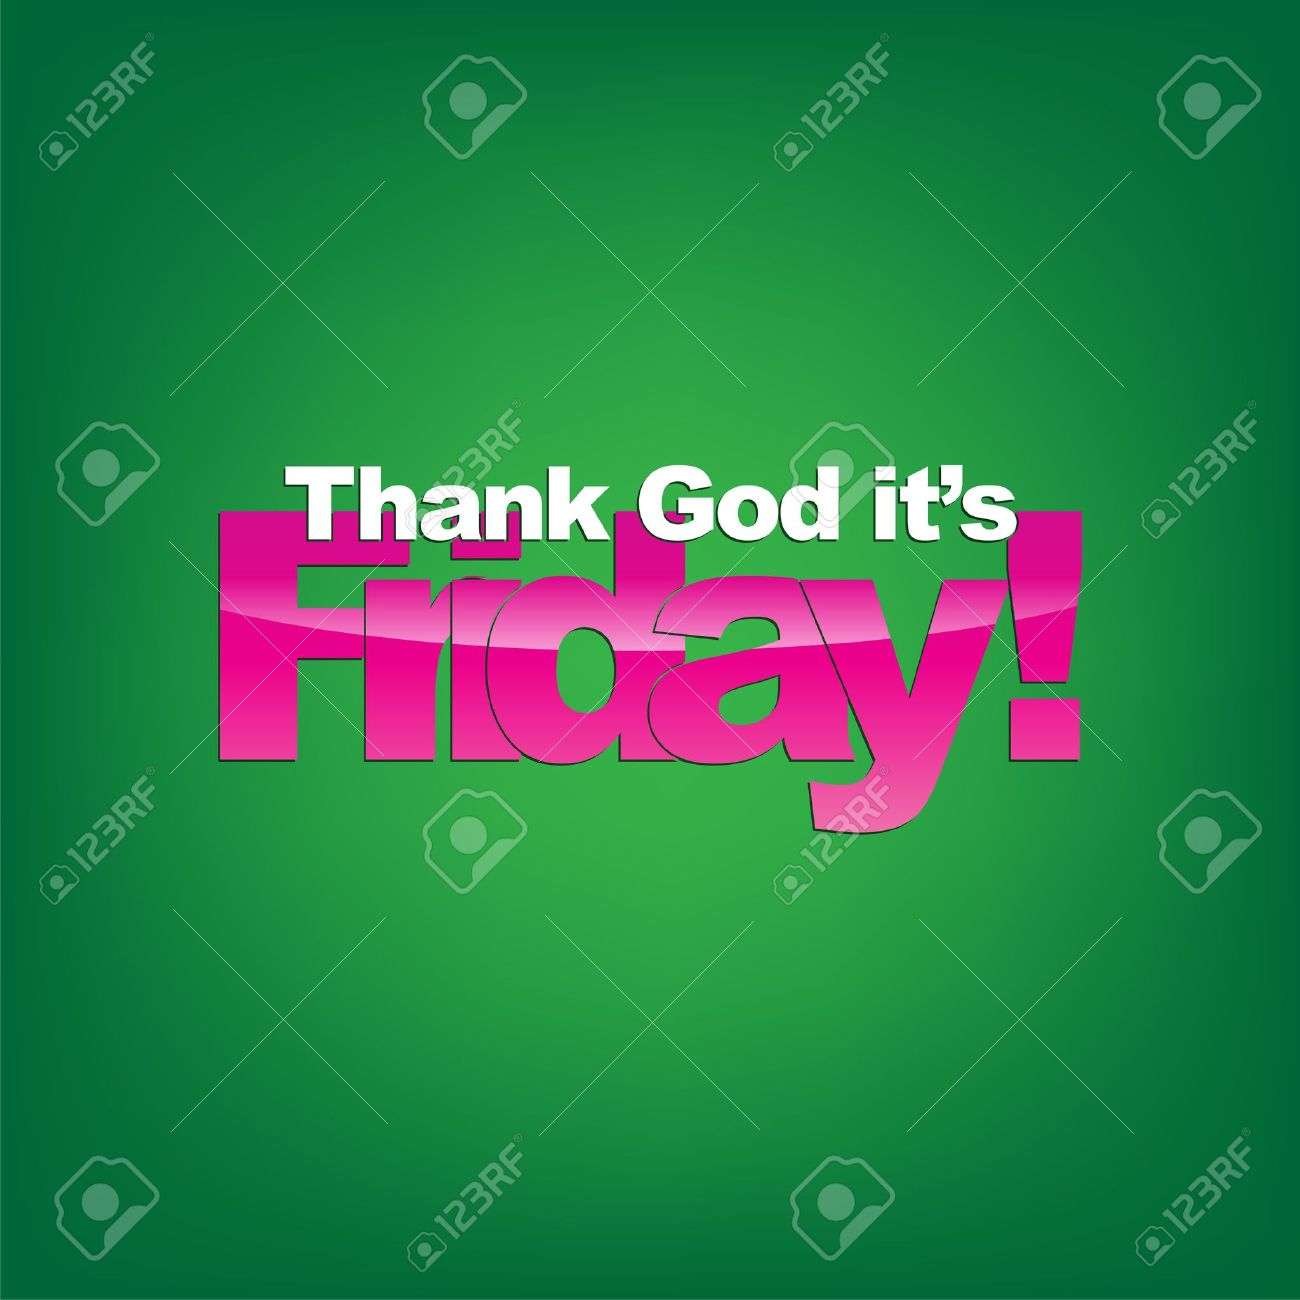 Thank God it's Friday! Typography background! Stock Vector - 22150694